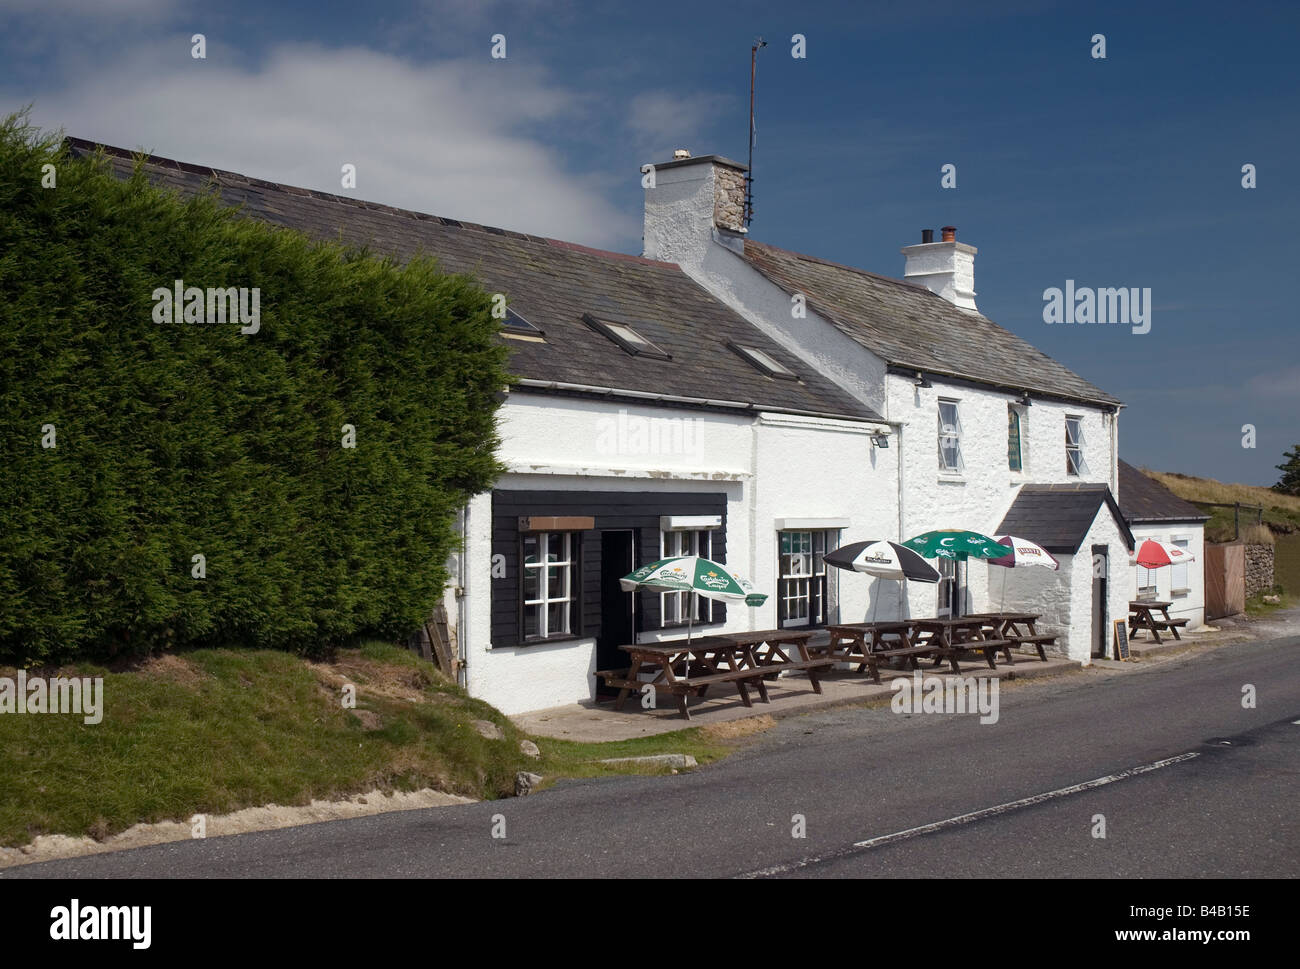 Warren House Inn, Postbridge, Dartmoor National Park, Devon, England. - Stock Image